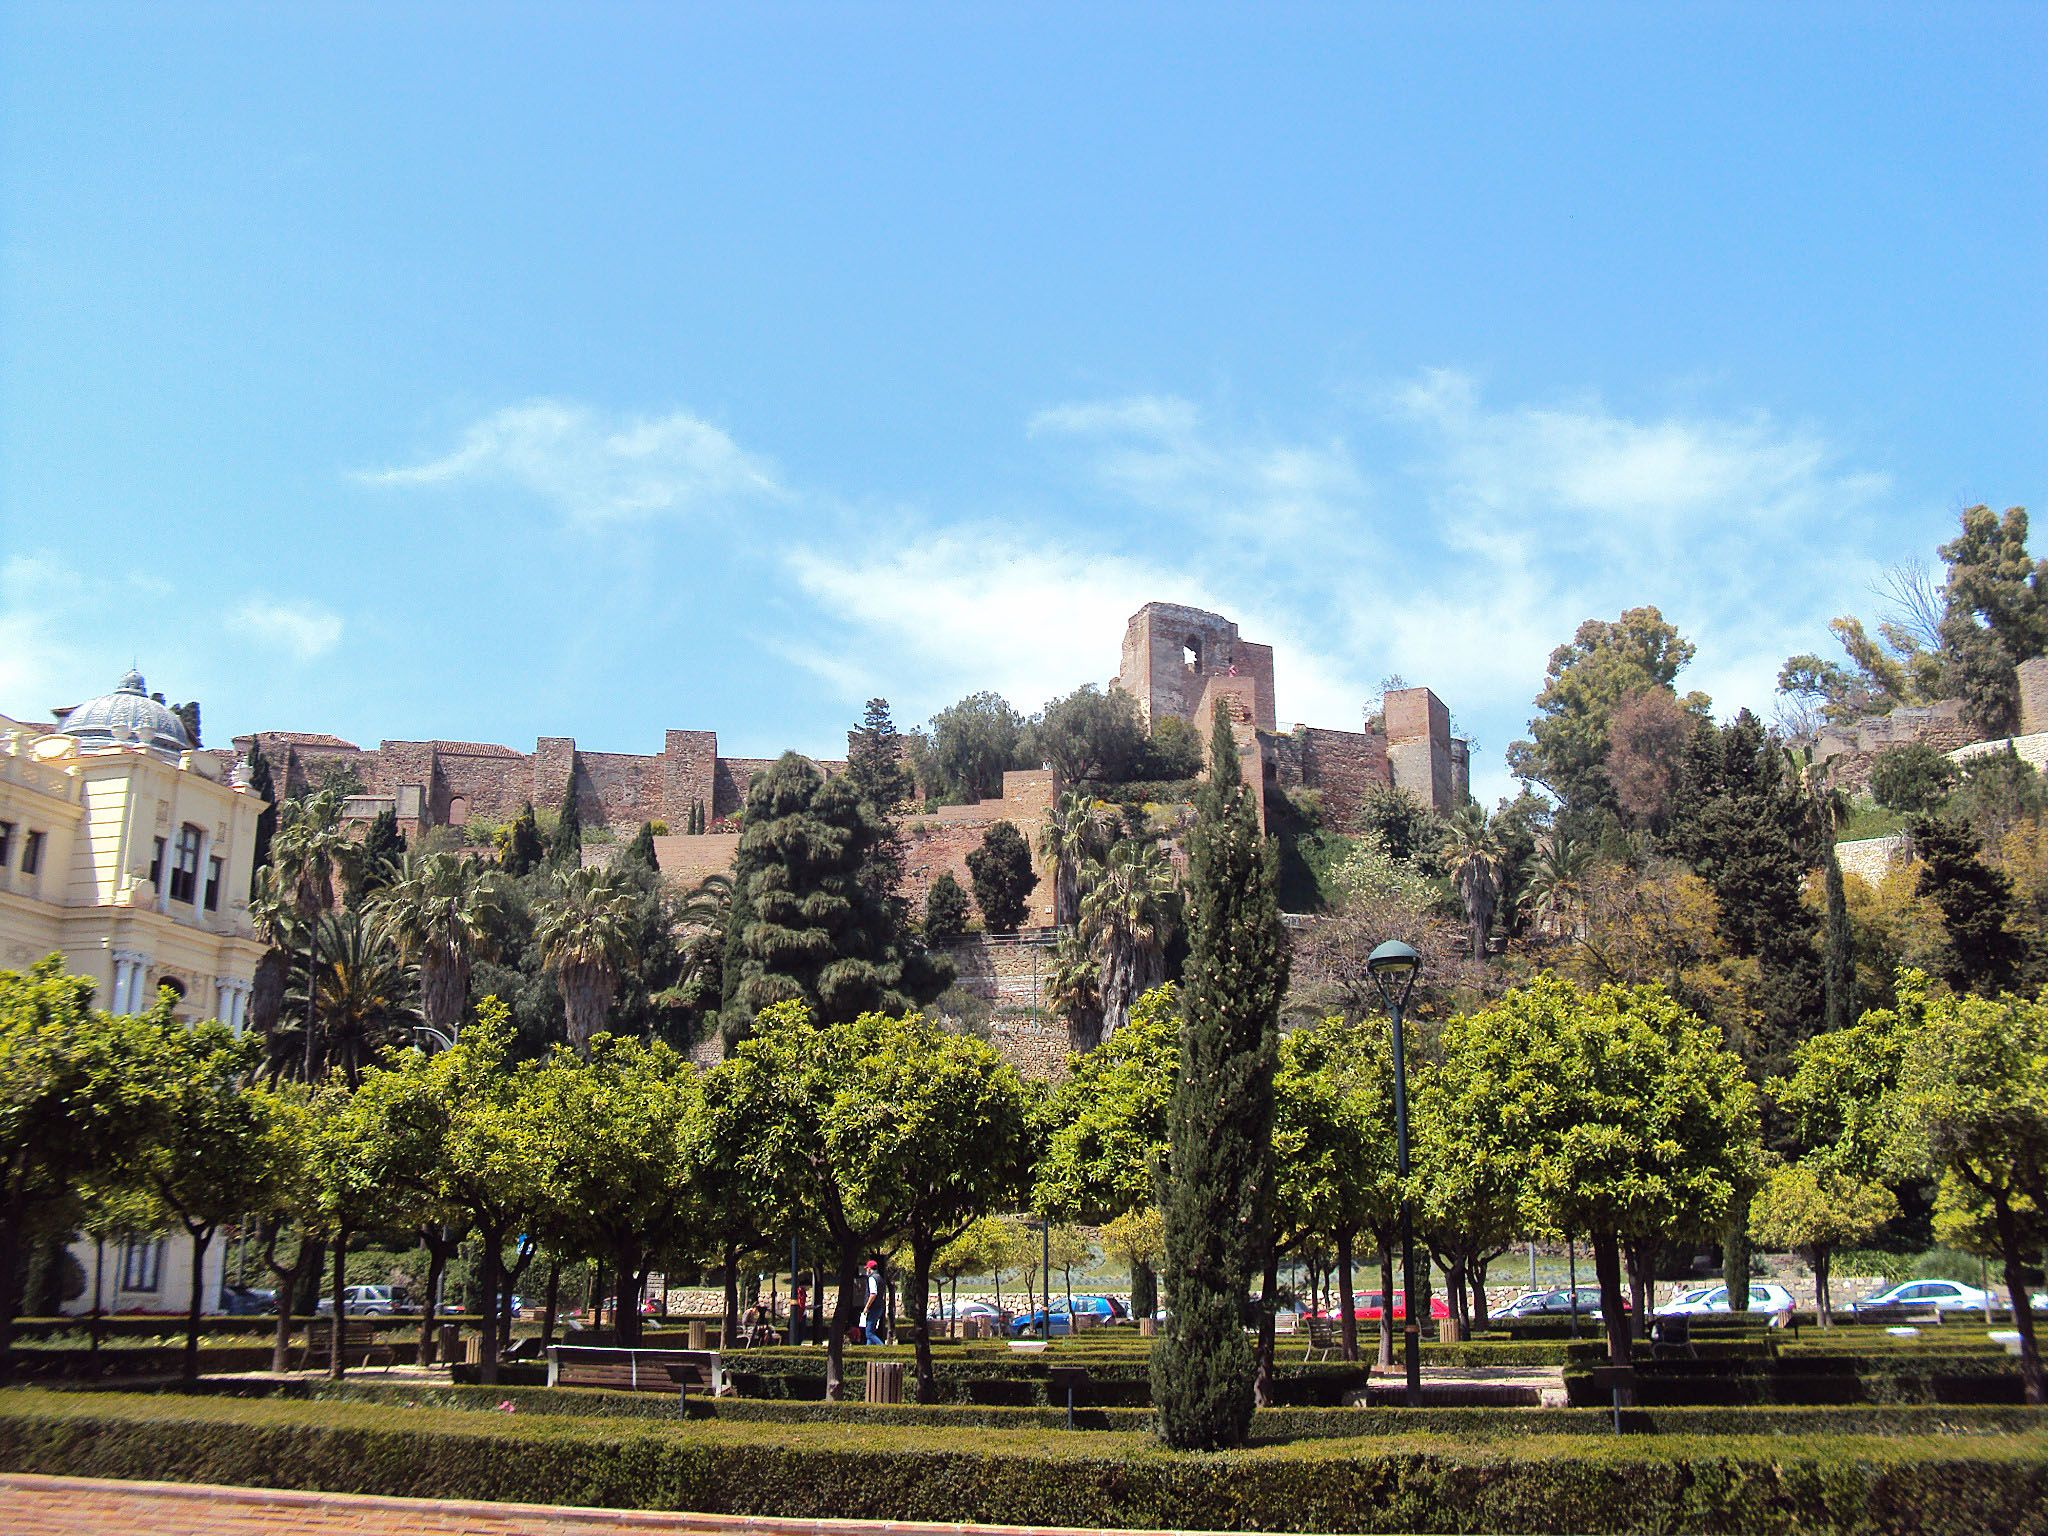 Malaga´s Alcazaba and Puerta Oscura Garden, plenty of a wide variety of roses from all around the world (Costa del Sol - Andalusia, Spain)